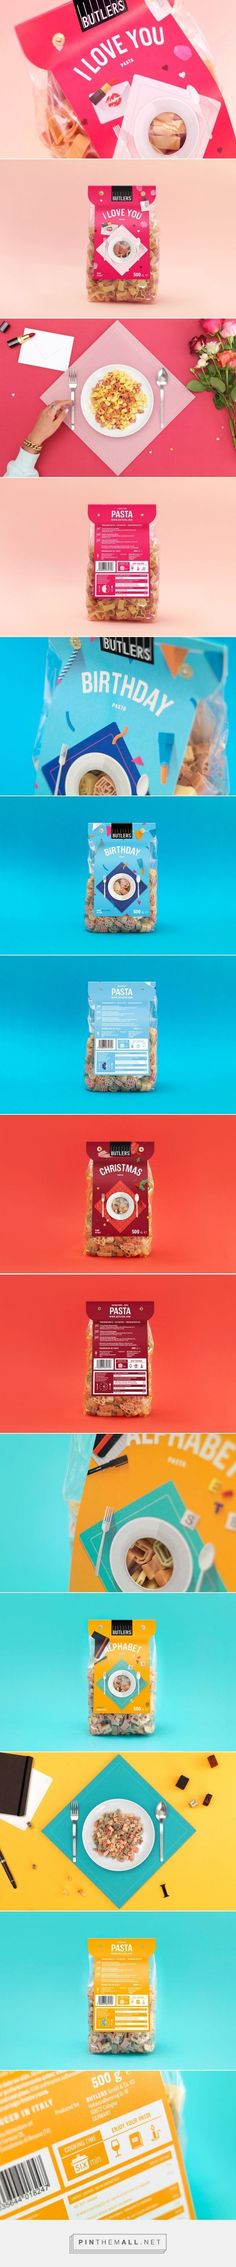 Butlers Pasta packaging design by STUDIO CHAPEAUX